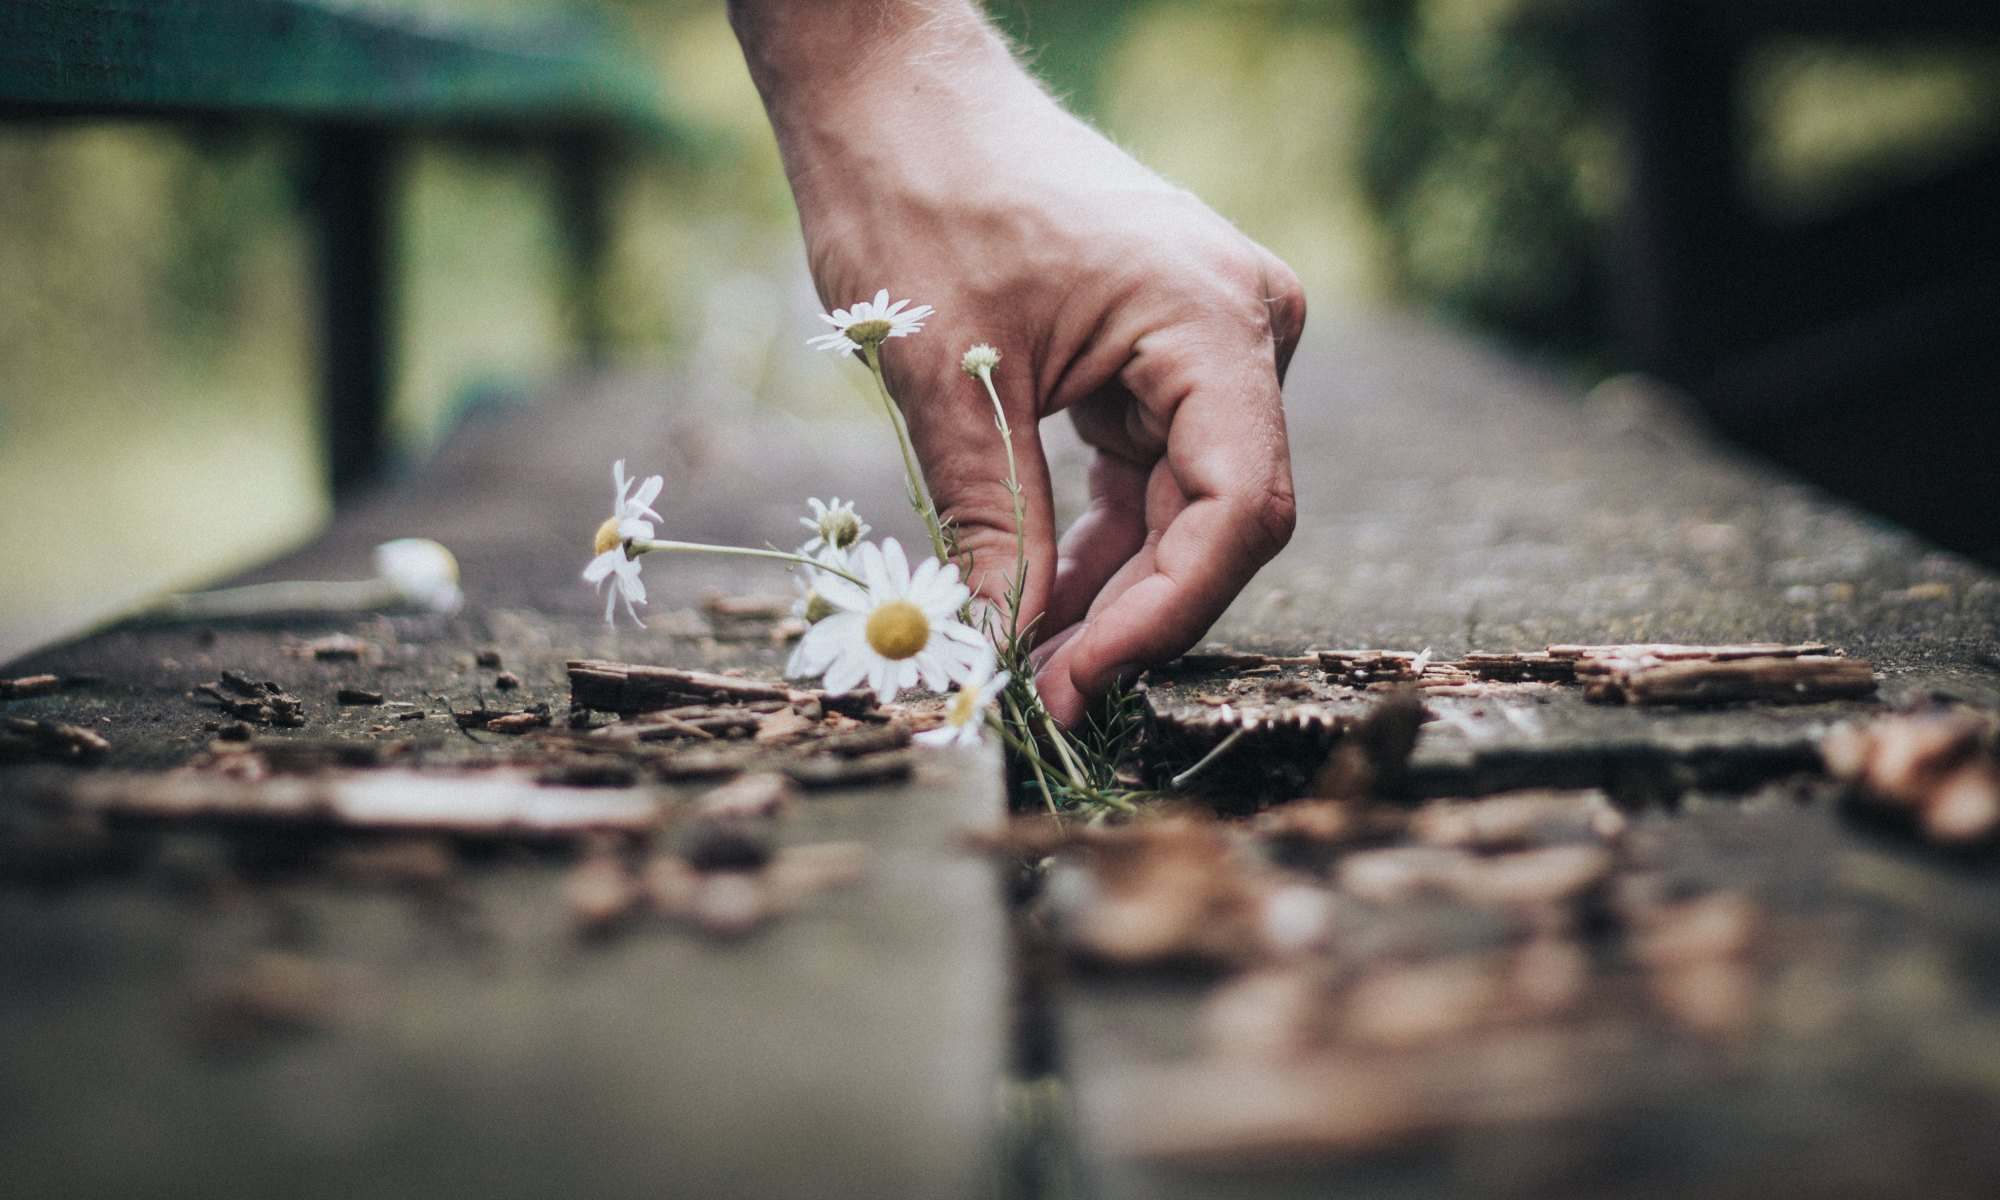 Person holding white daisy flower after earthquake